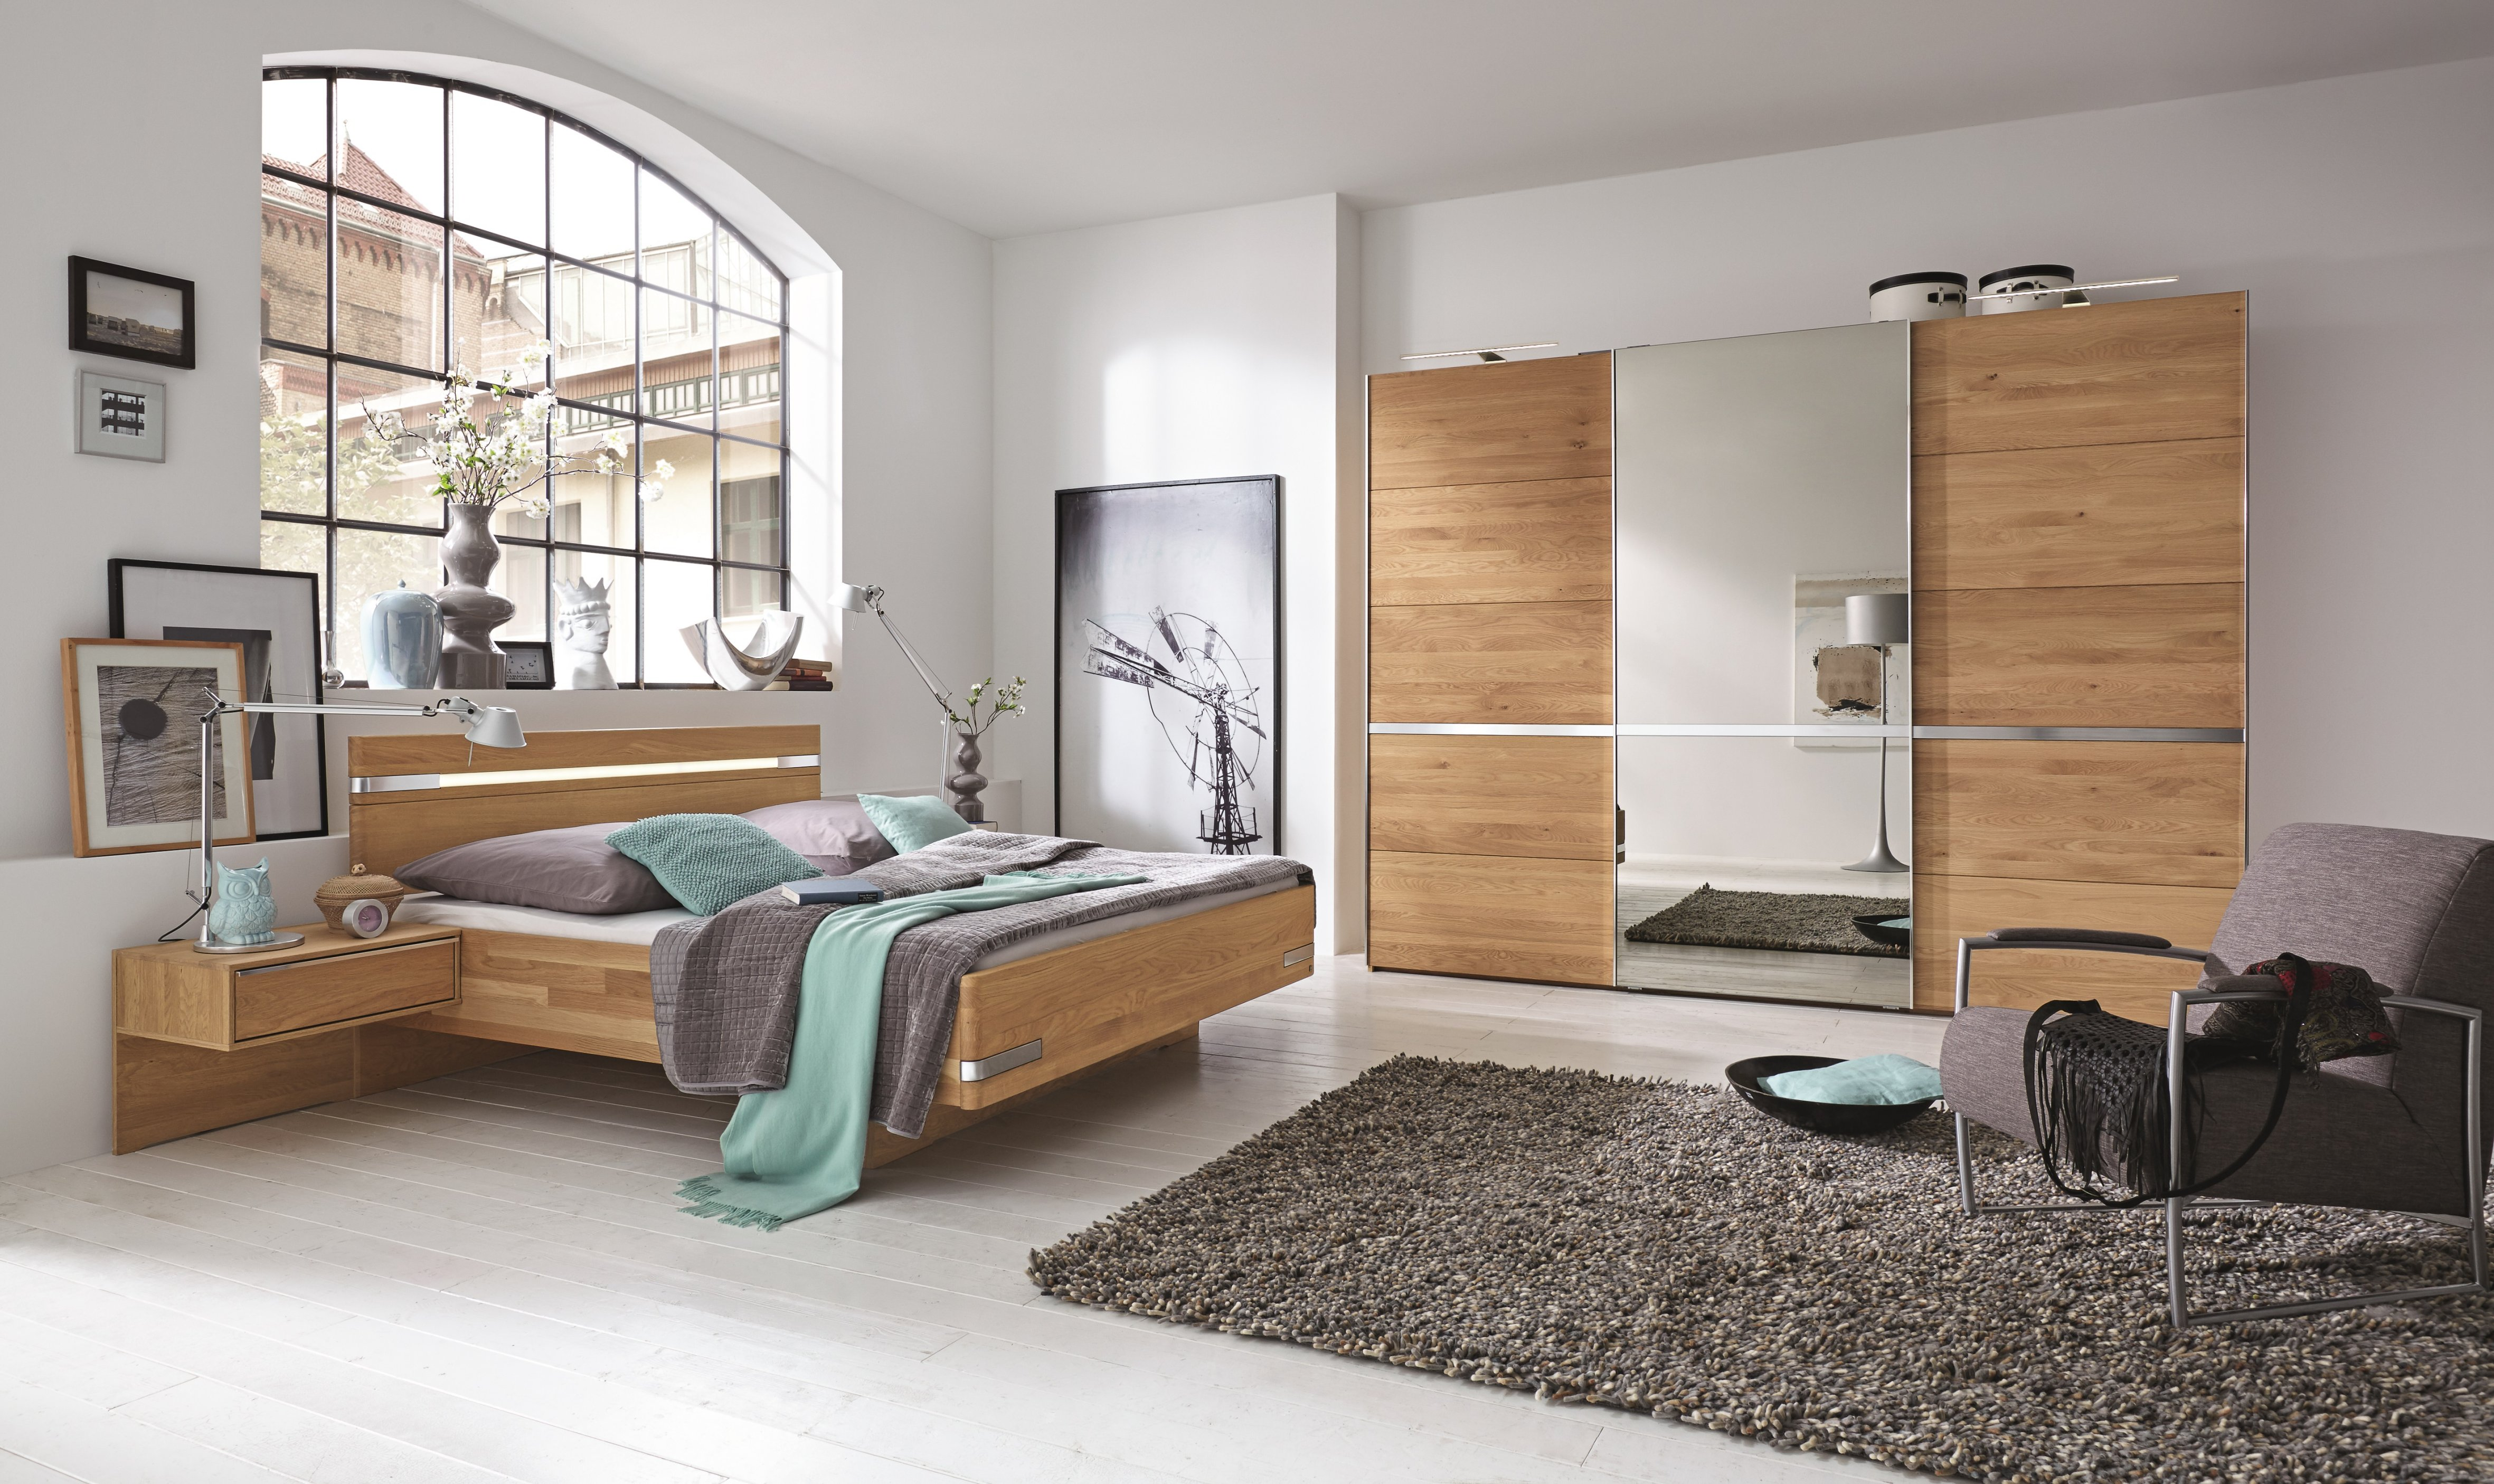 Affordable Affordable Amazing Savona From Wiemann Uk With Wiemann Loft With  Wiemann Loft With Loft Wiemann